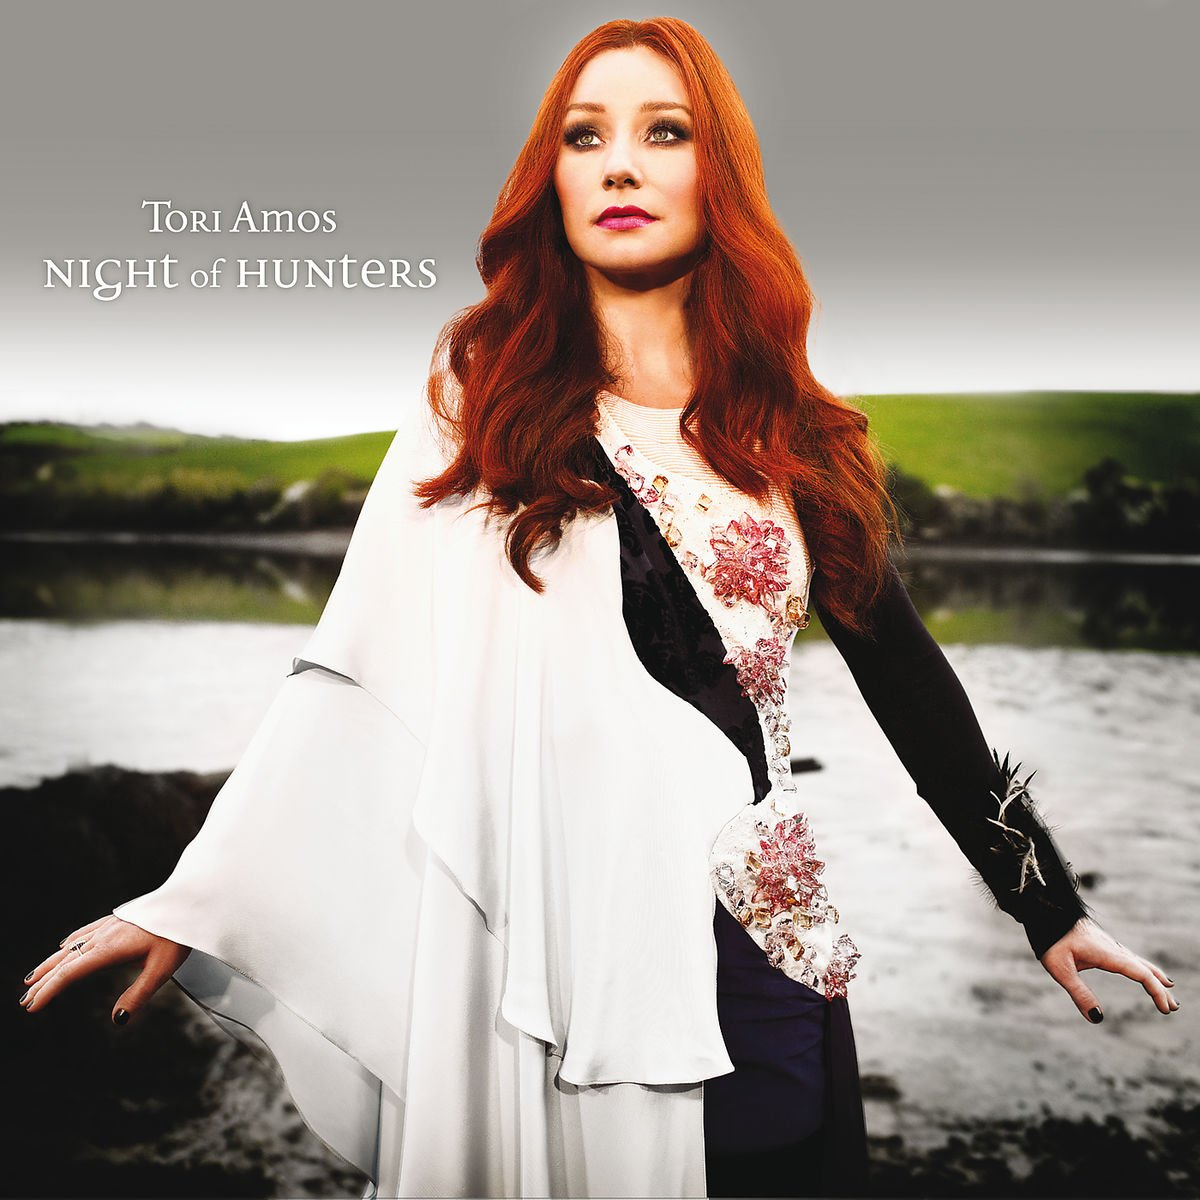 Tori Amos, Night of Hunters